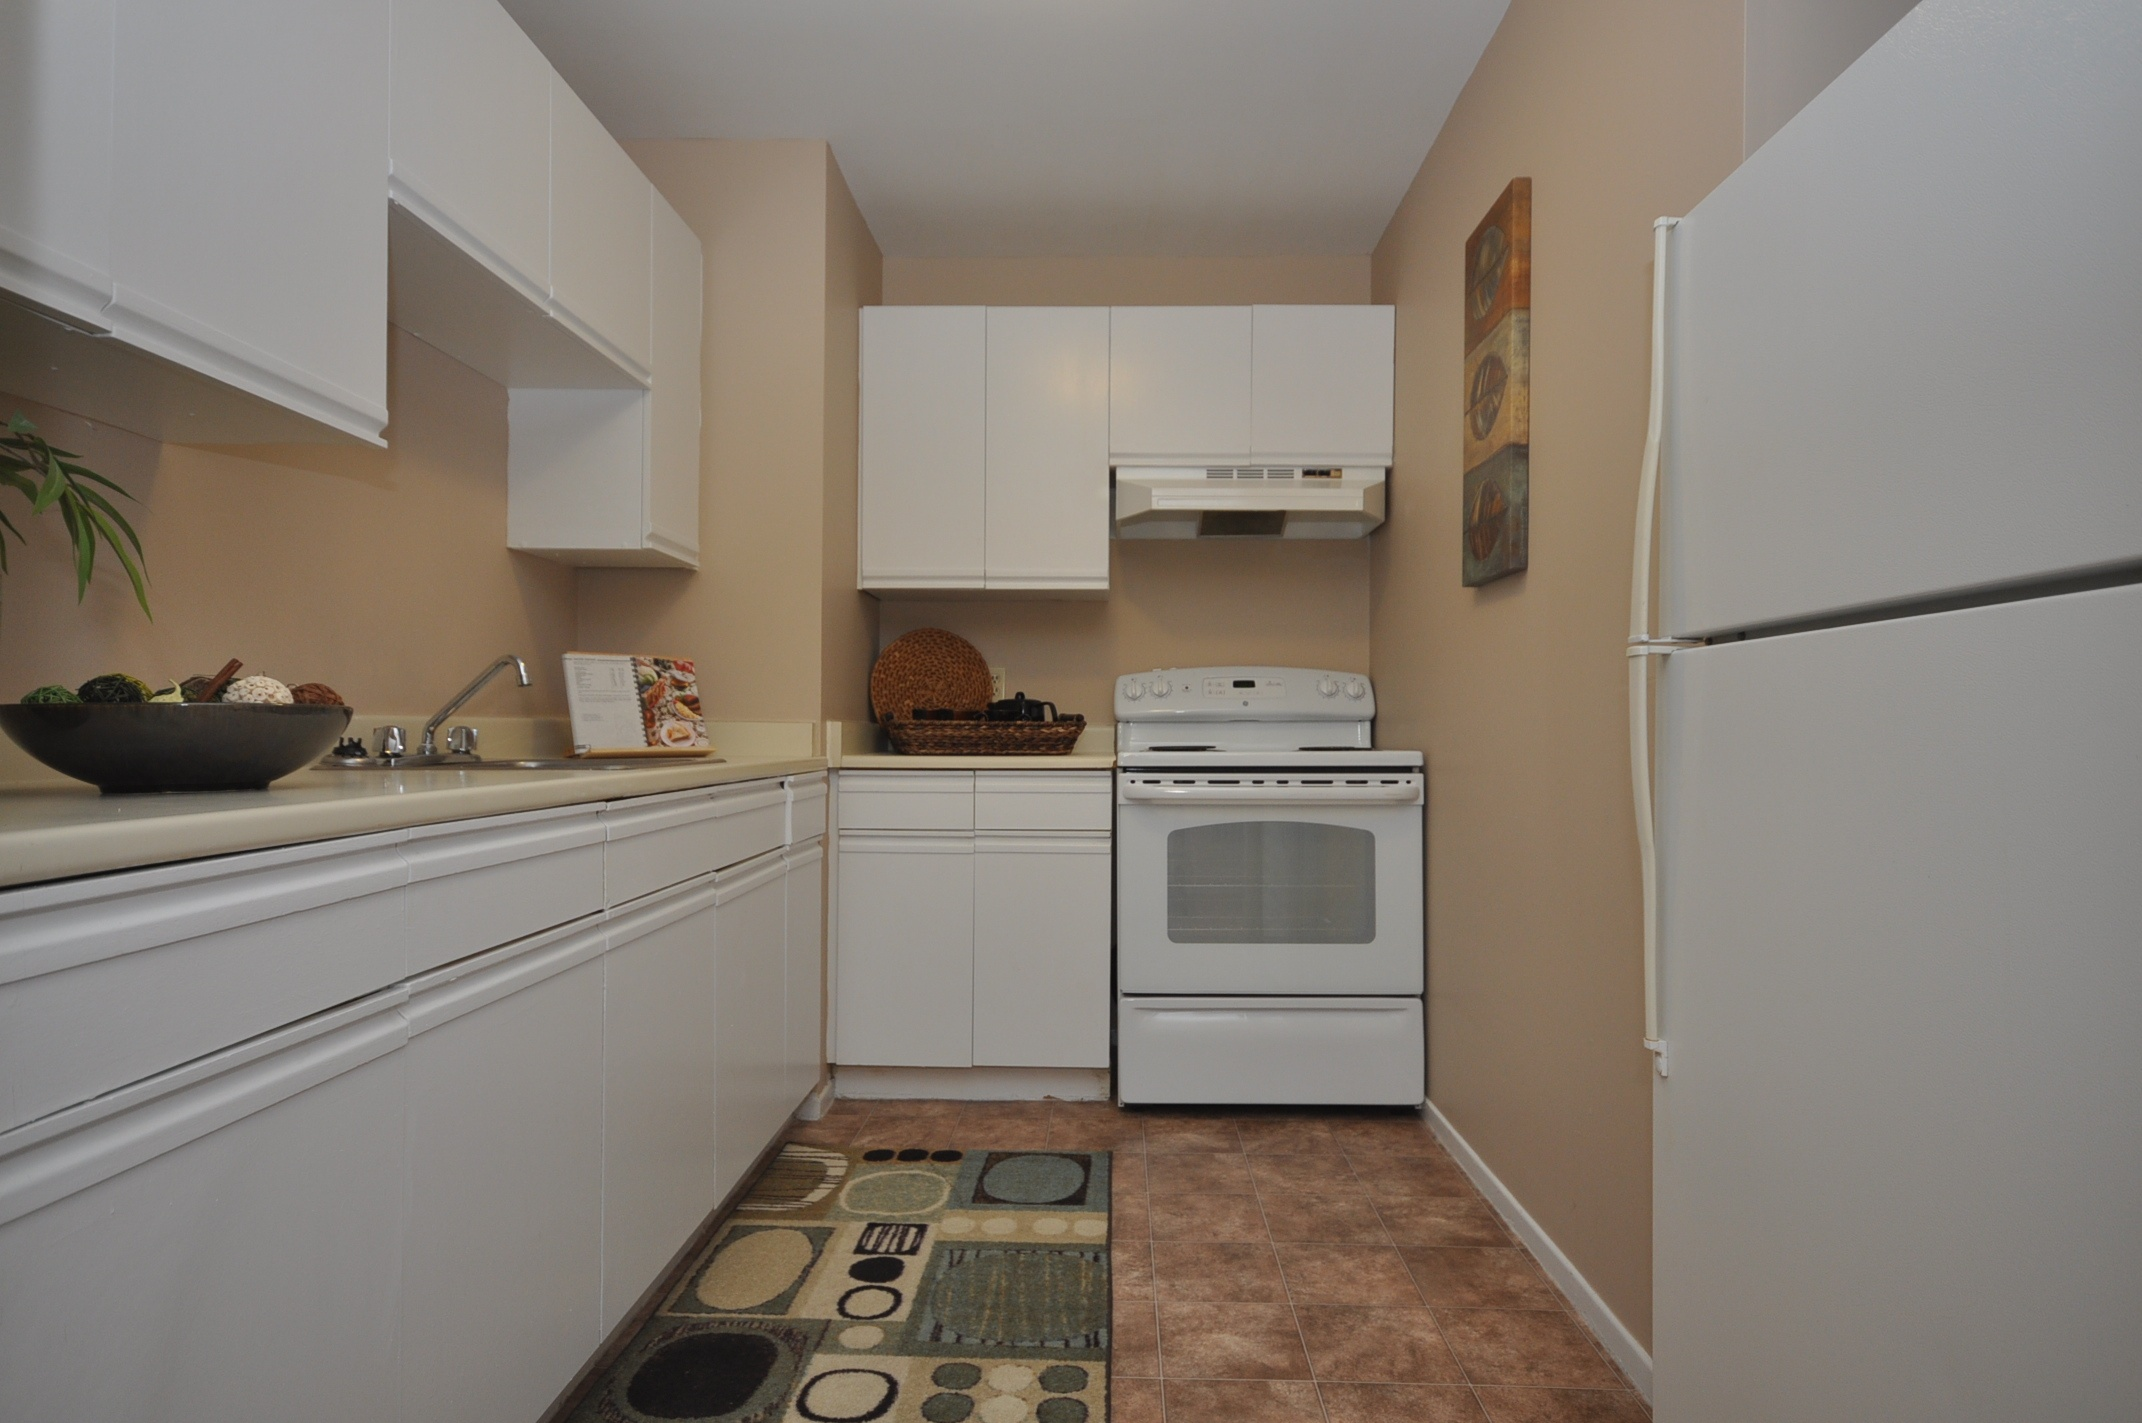 9-54 Paige Plaza Rental